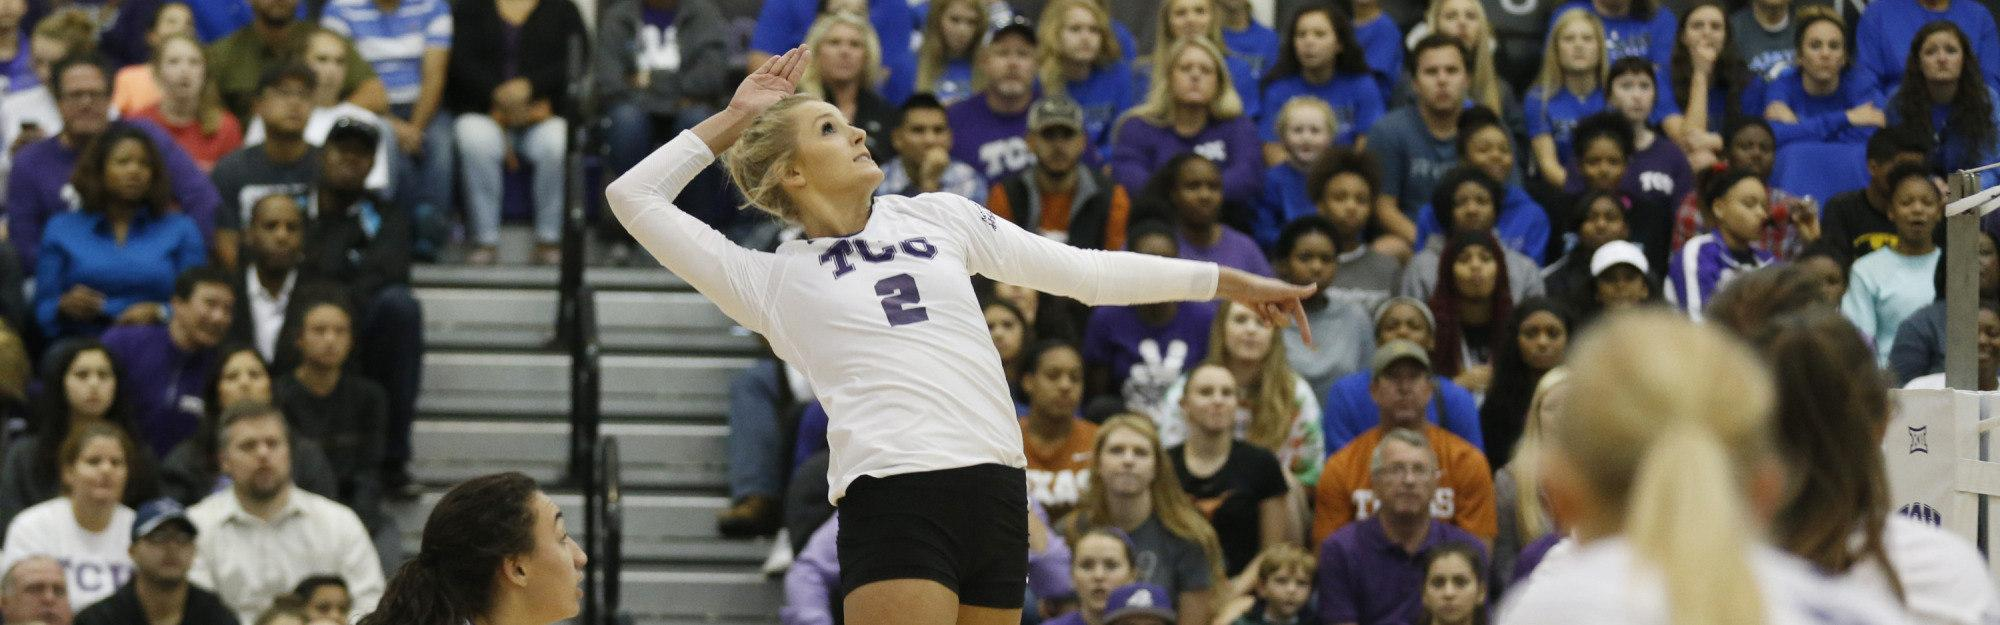 Volleyball starts slow, loses to Iowa State 0-3